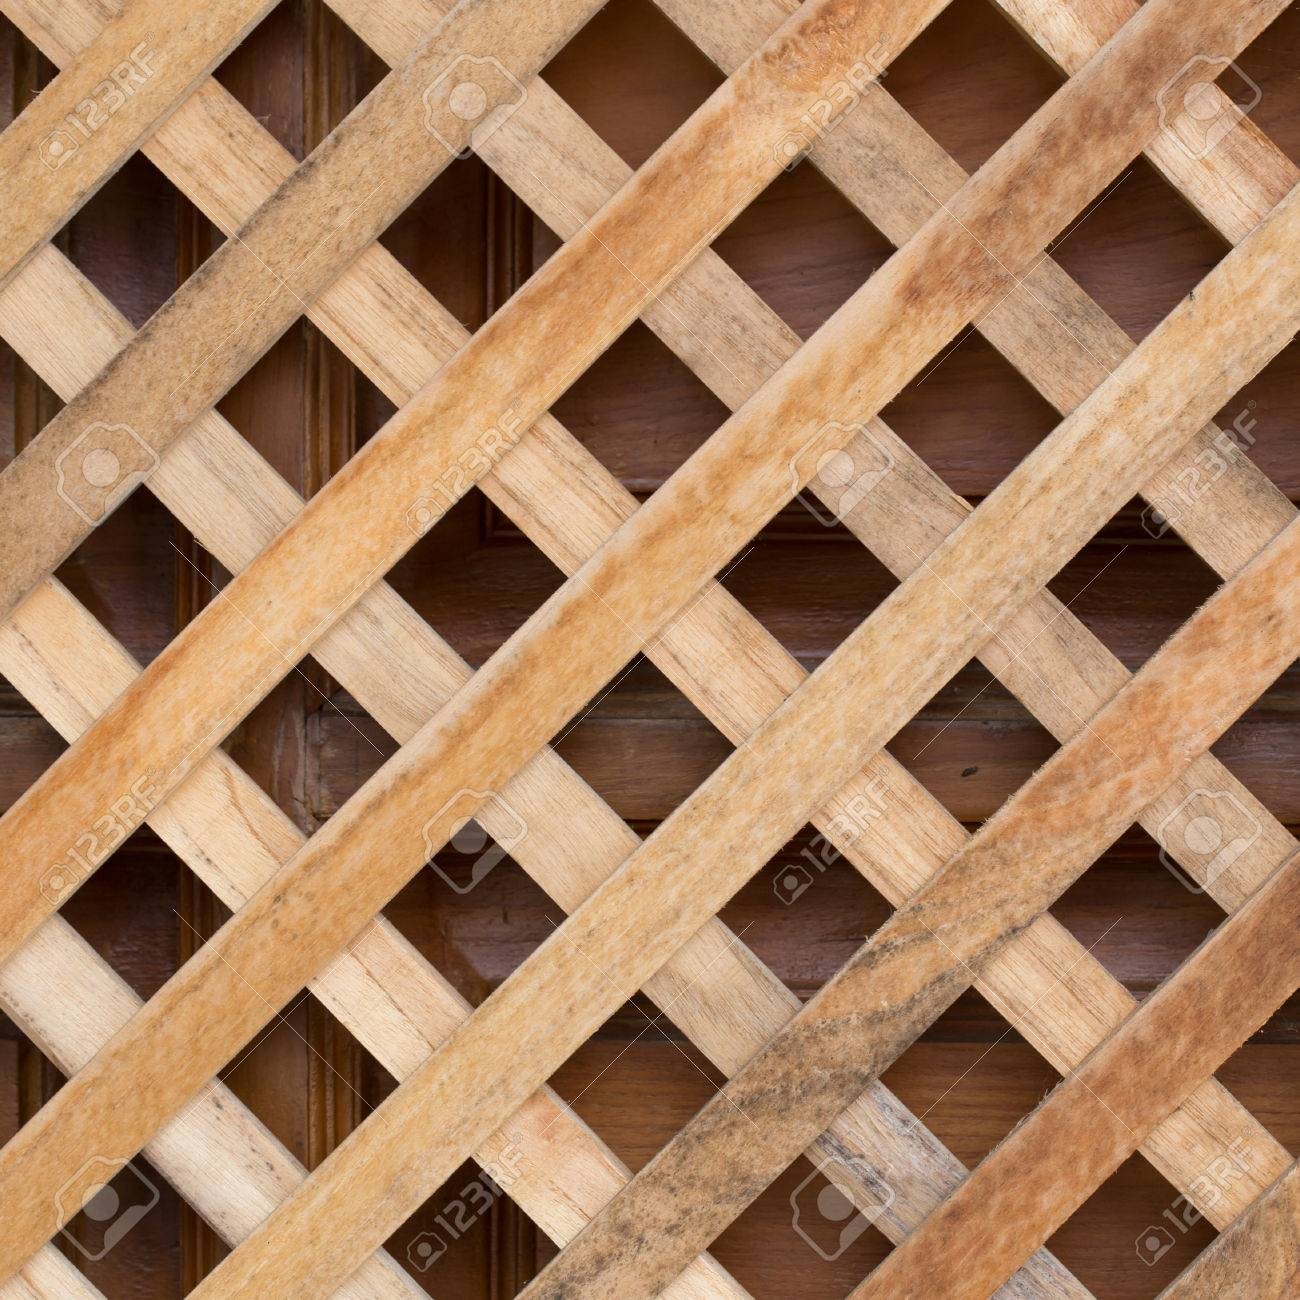 Design Of Wood Wall Panel Plank Cross Background Stock Photo Picture And Royalty Free Image Image 33199175